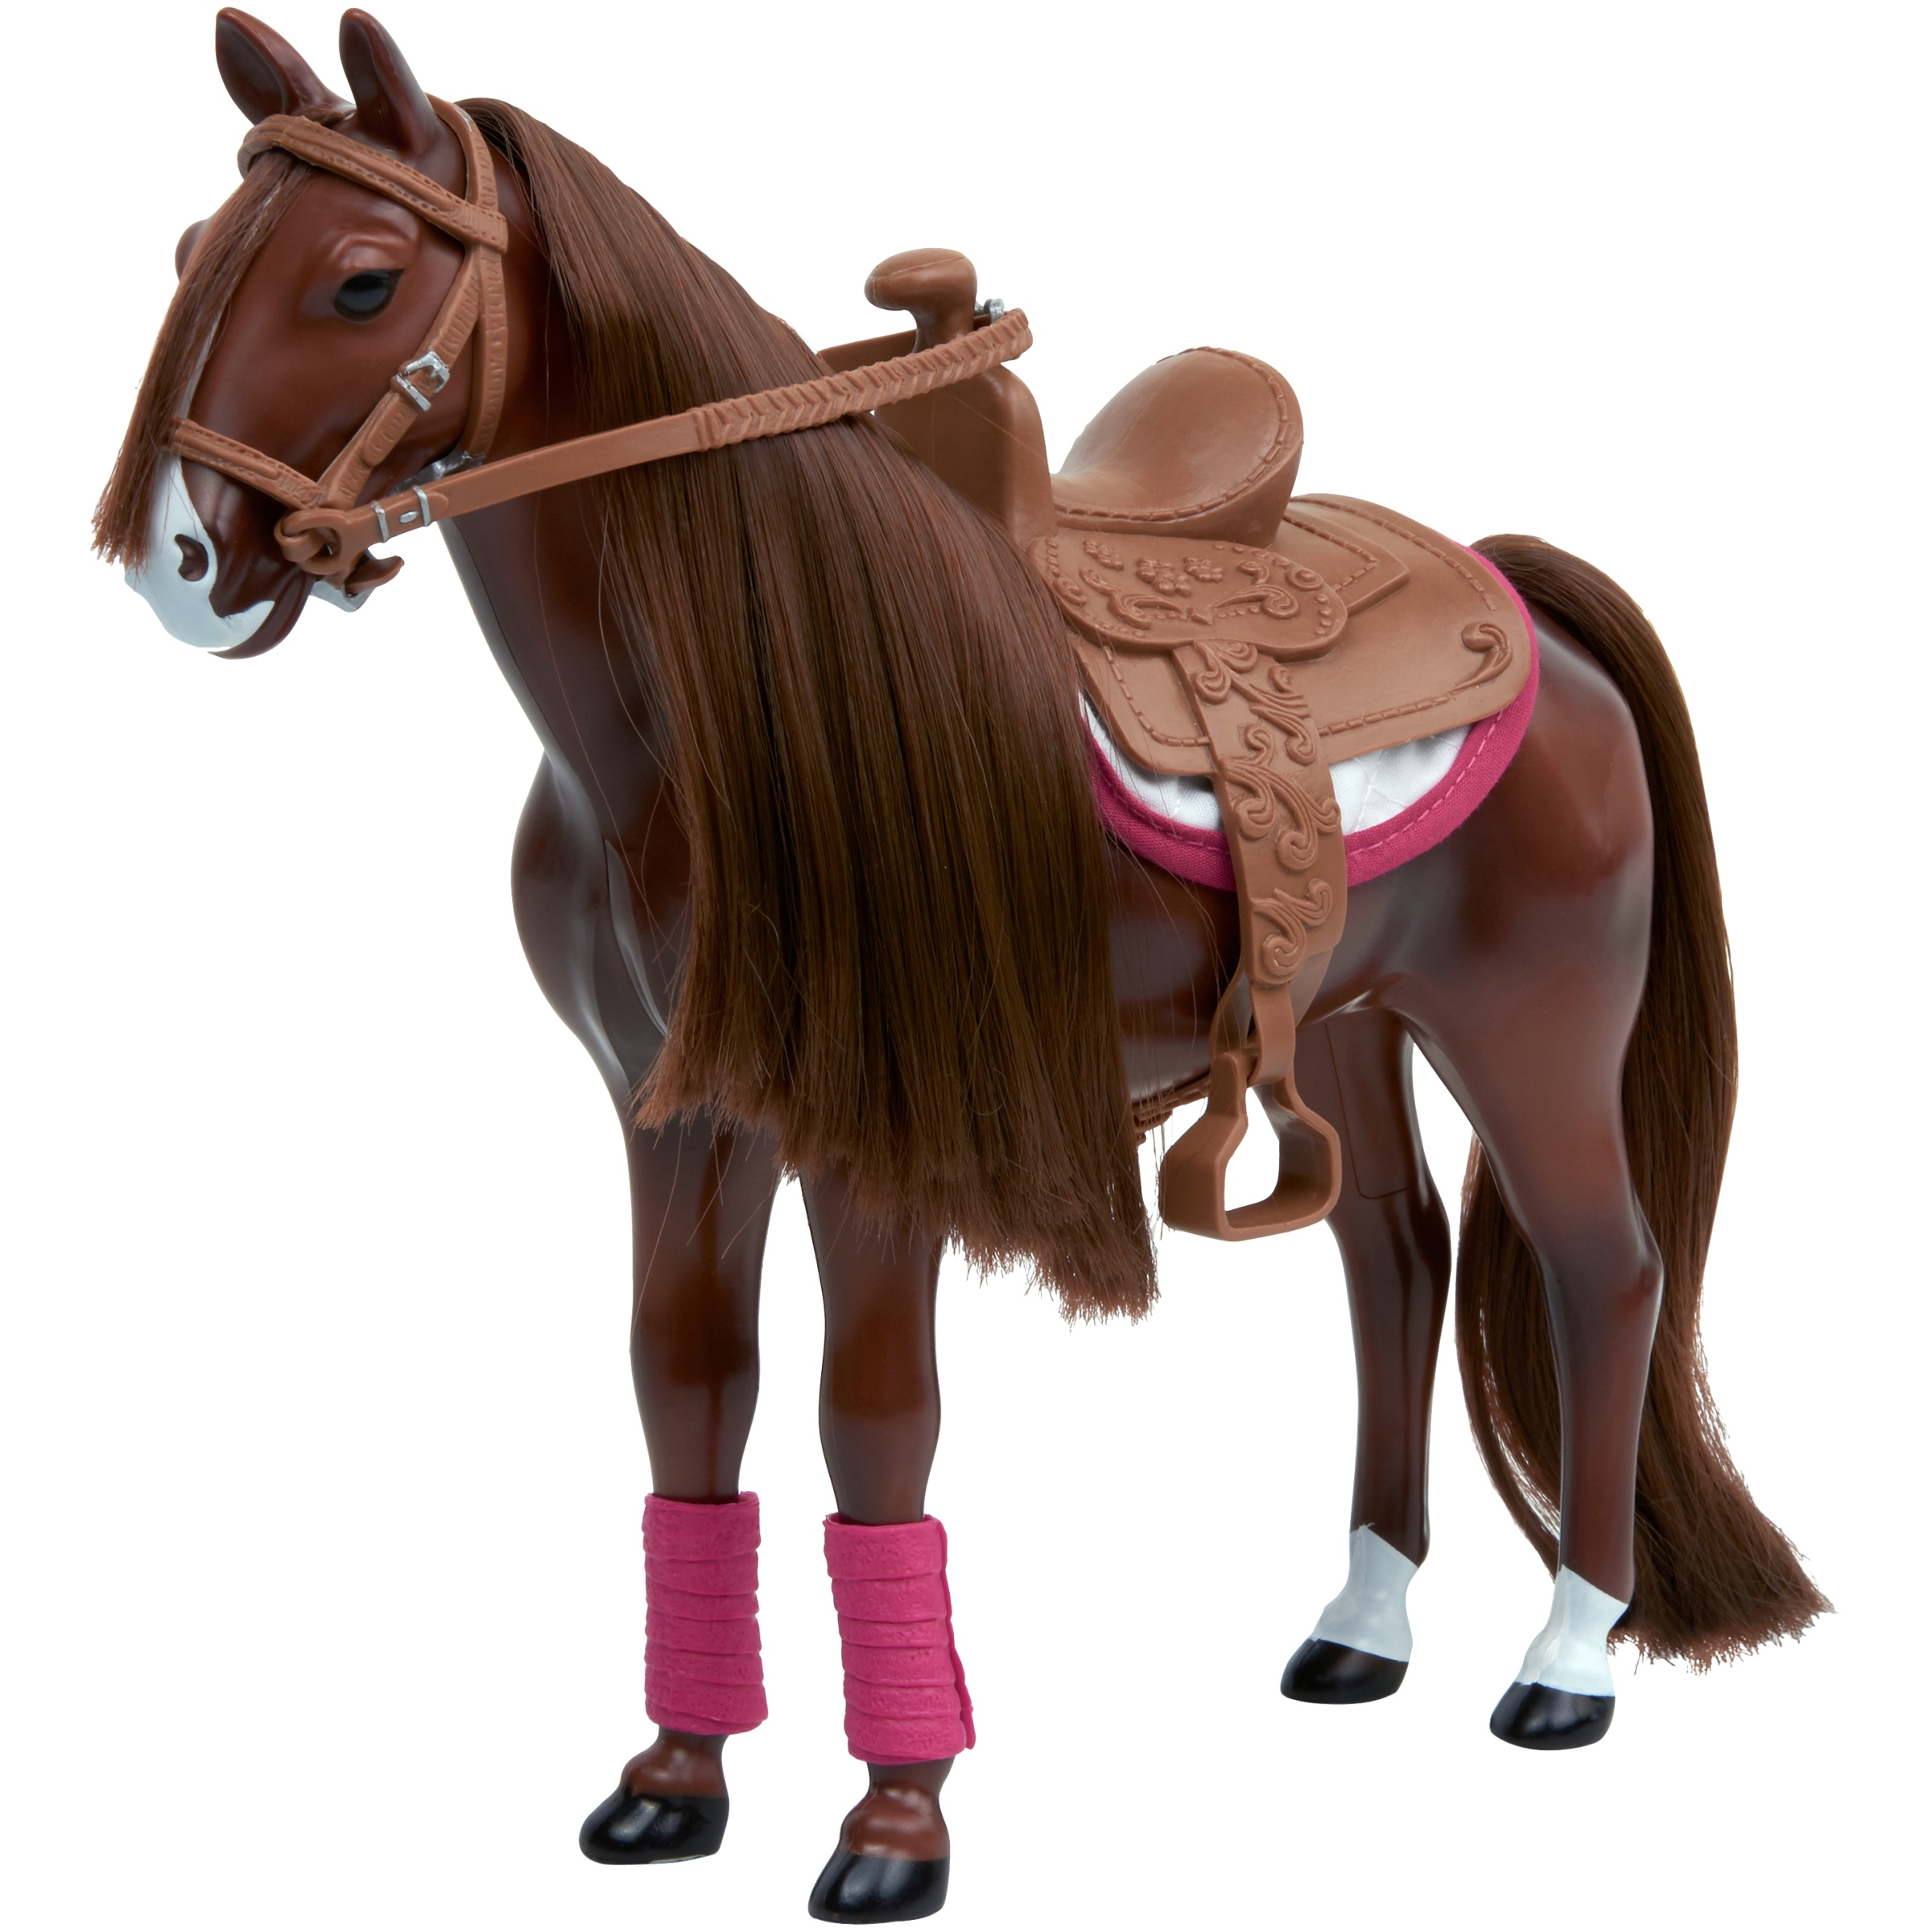 My Life As Mini Horse, Sized to Accommodate My Life As Dolls and Others